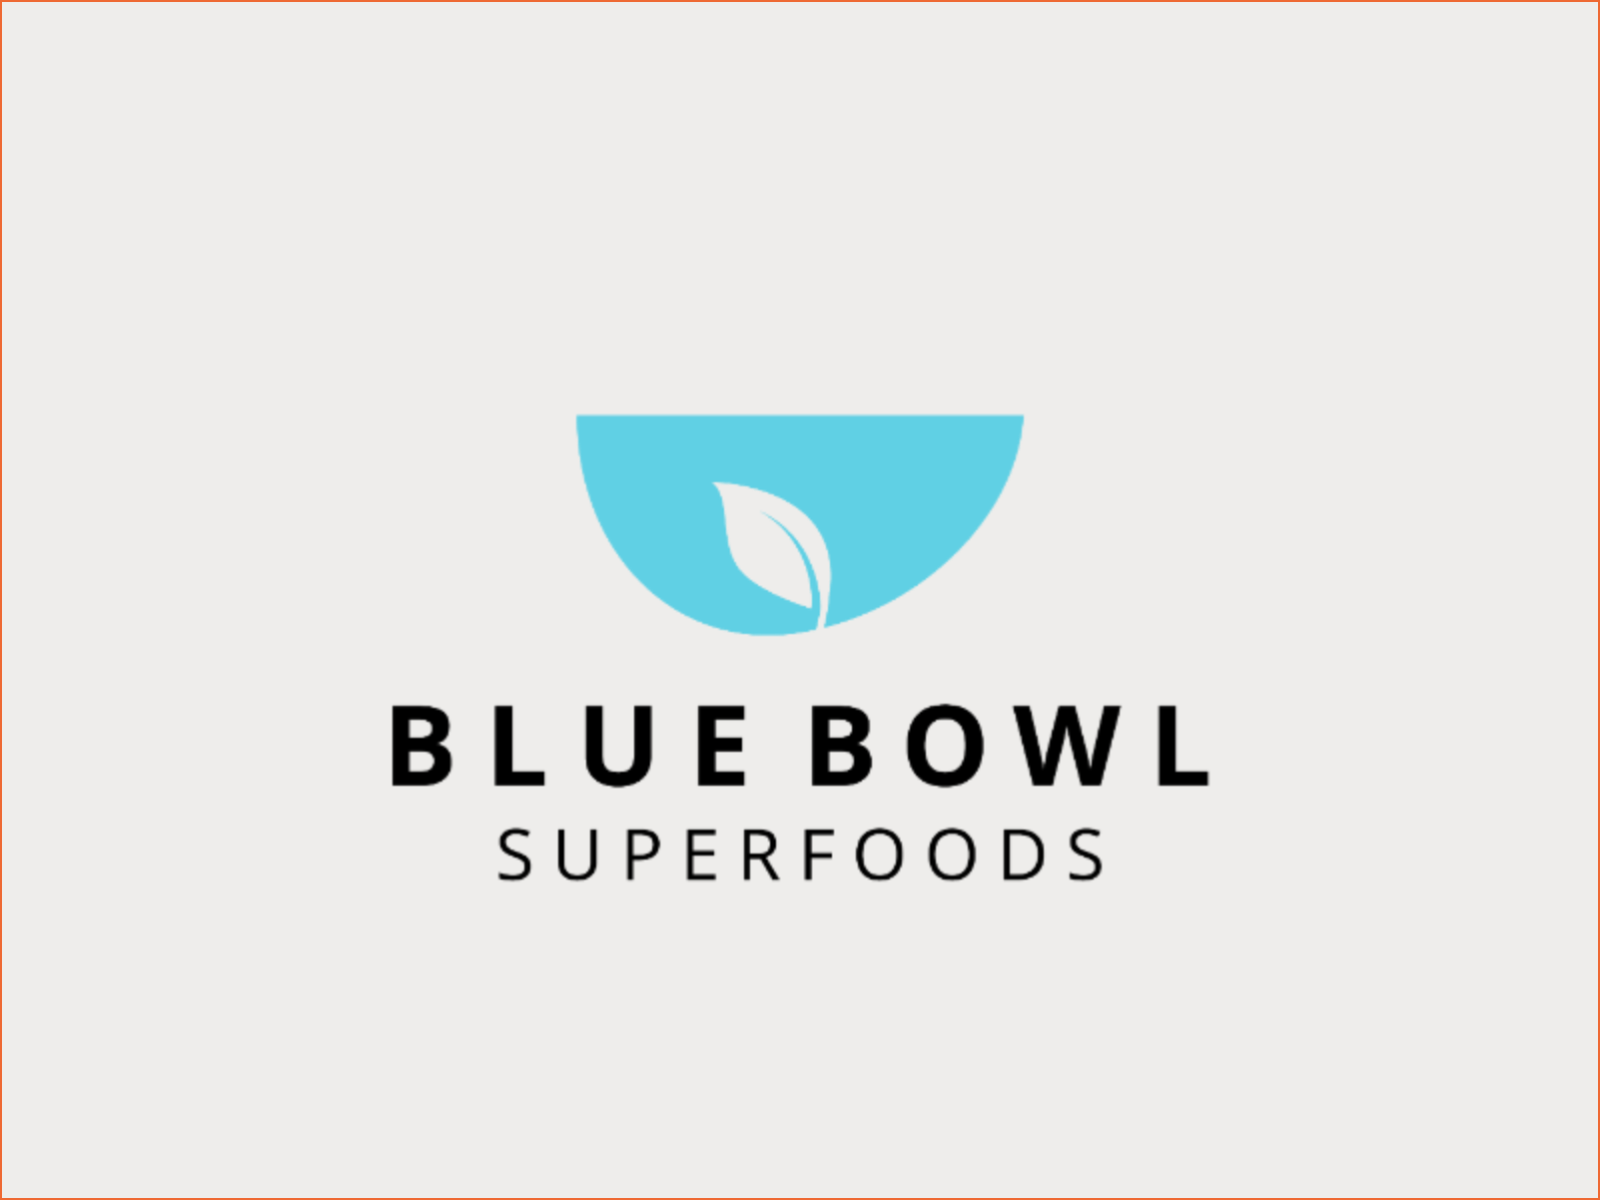 Blue Bowl Superfoods